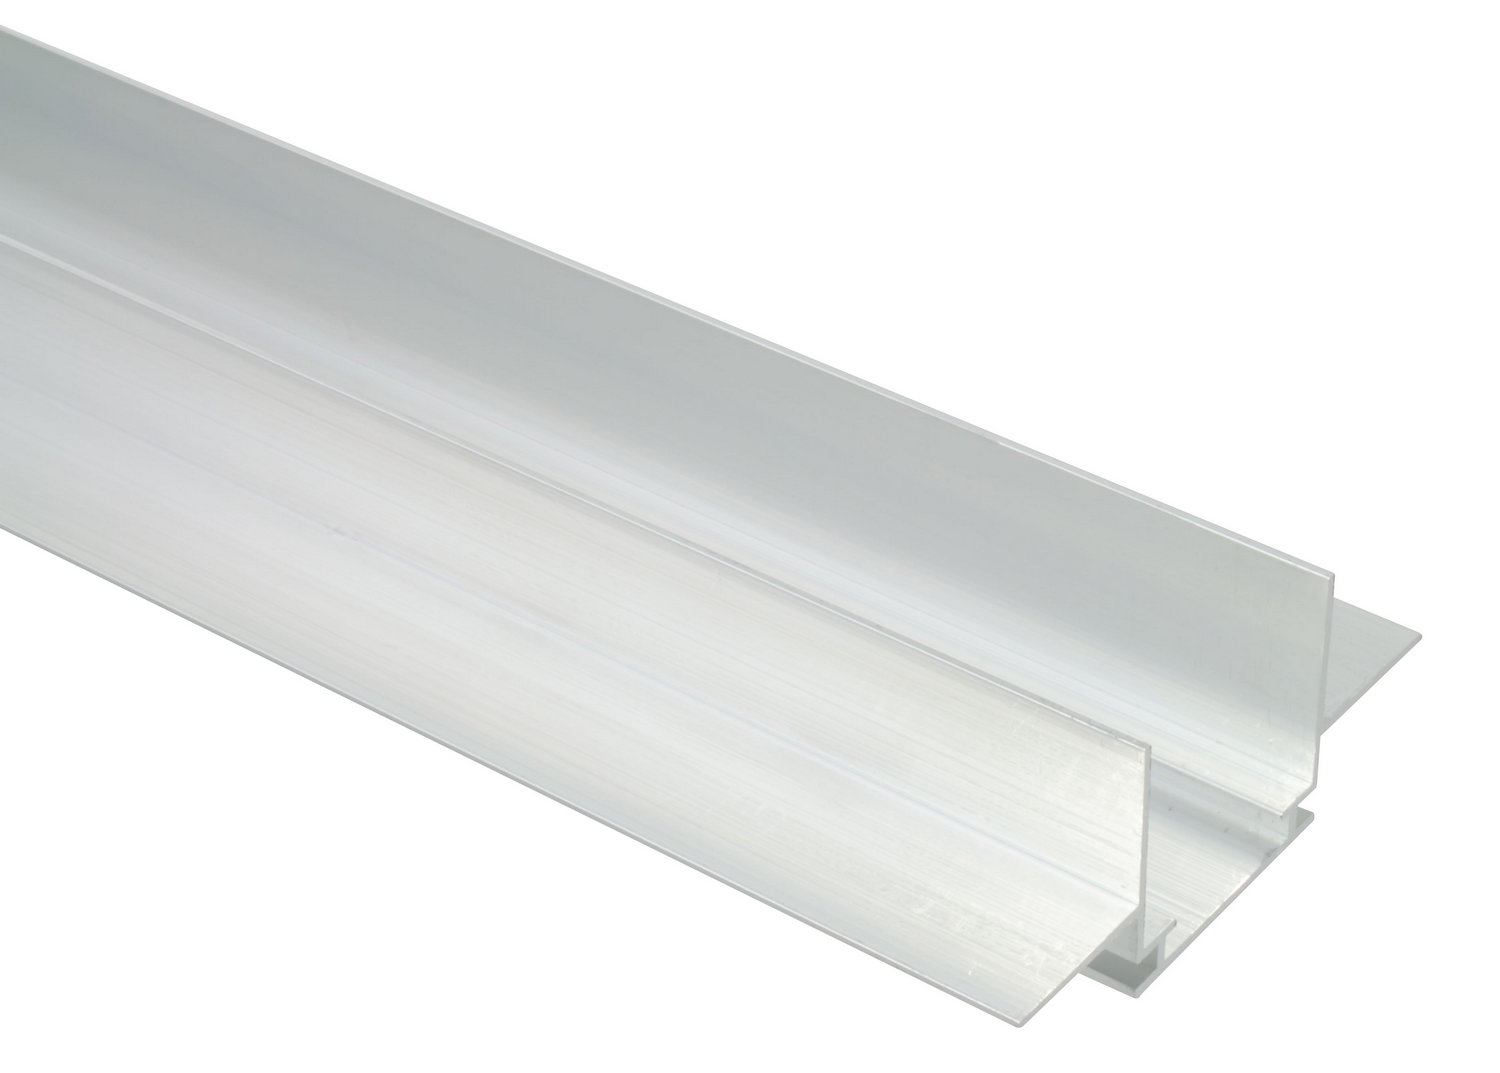 Drywall Housing For Slot Insert from the Extrusion collection by American Lighting PE D6 2M